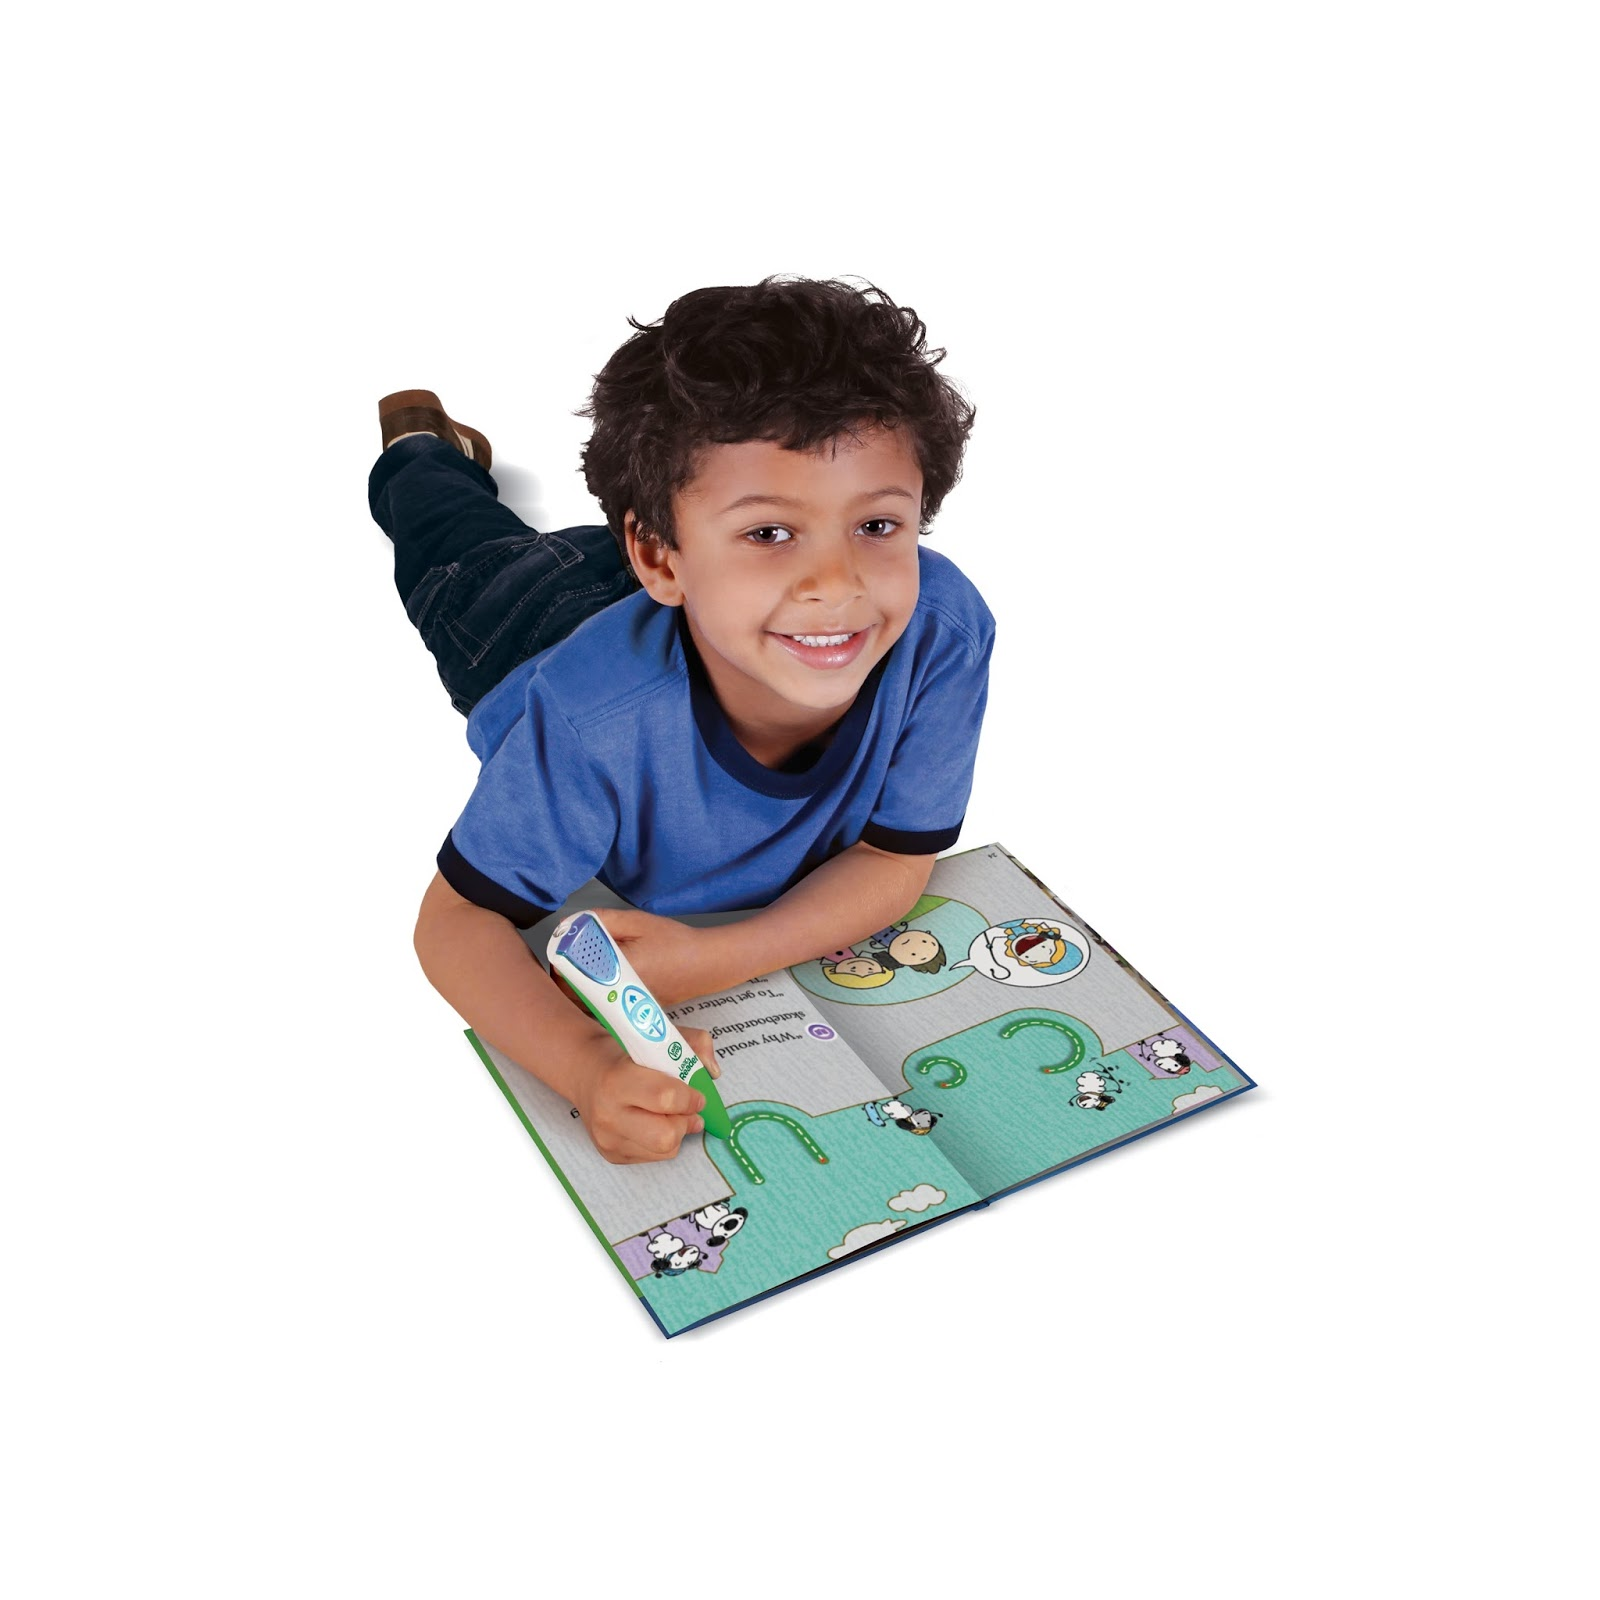 Win A LeapFrog LeapReader™ The Interactive Learn To Read & Write